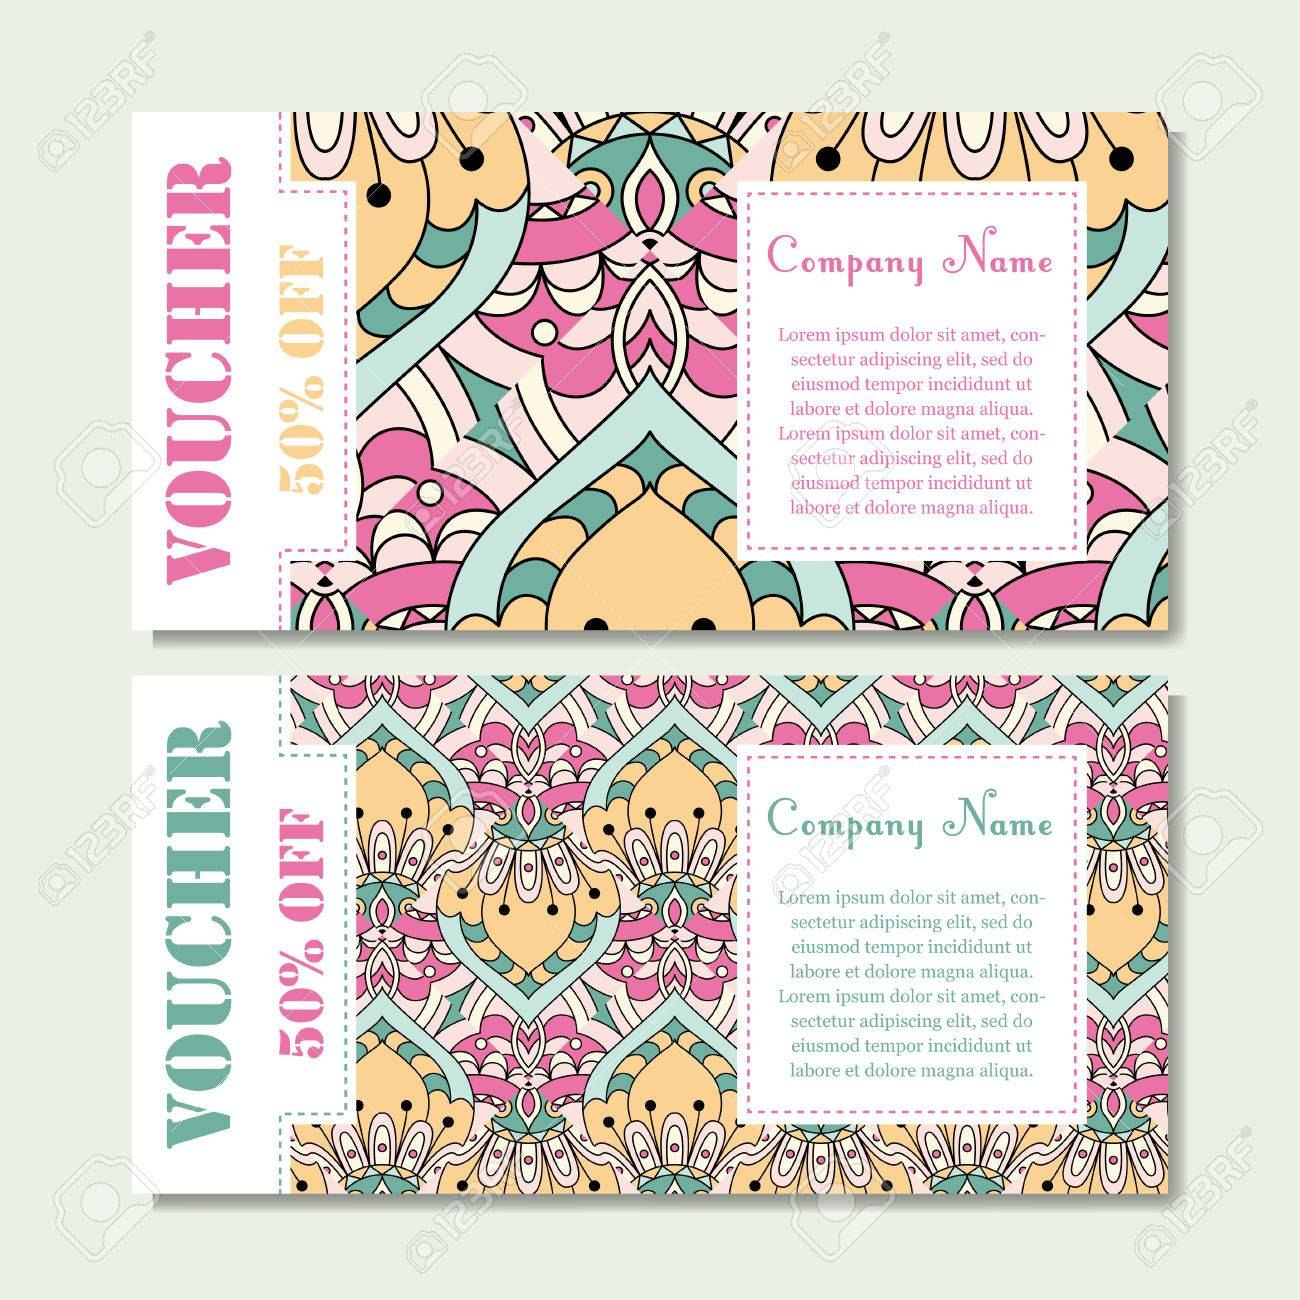 Yoga Gift Certificate Template Free With Plus Together As Well Regarding Yoga Gift Certificate Template Free